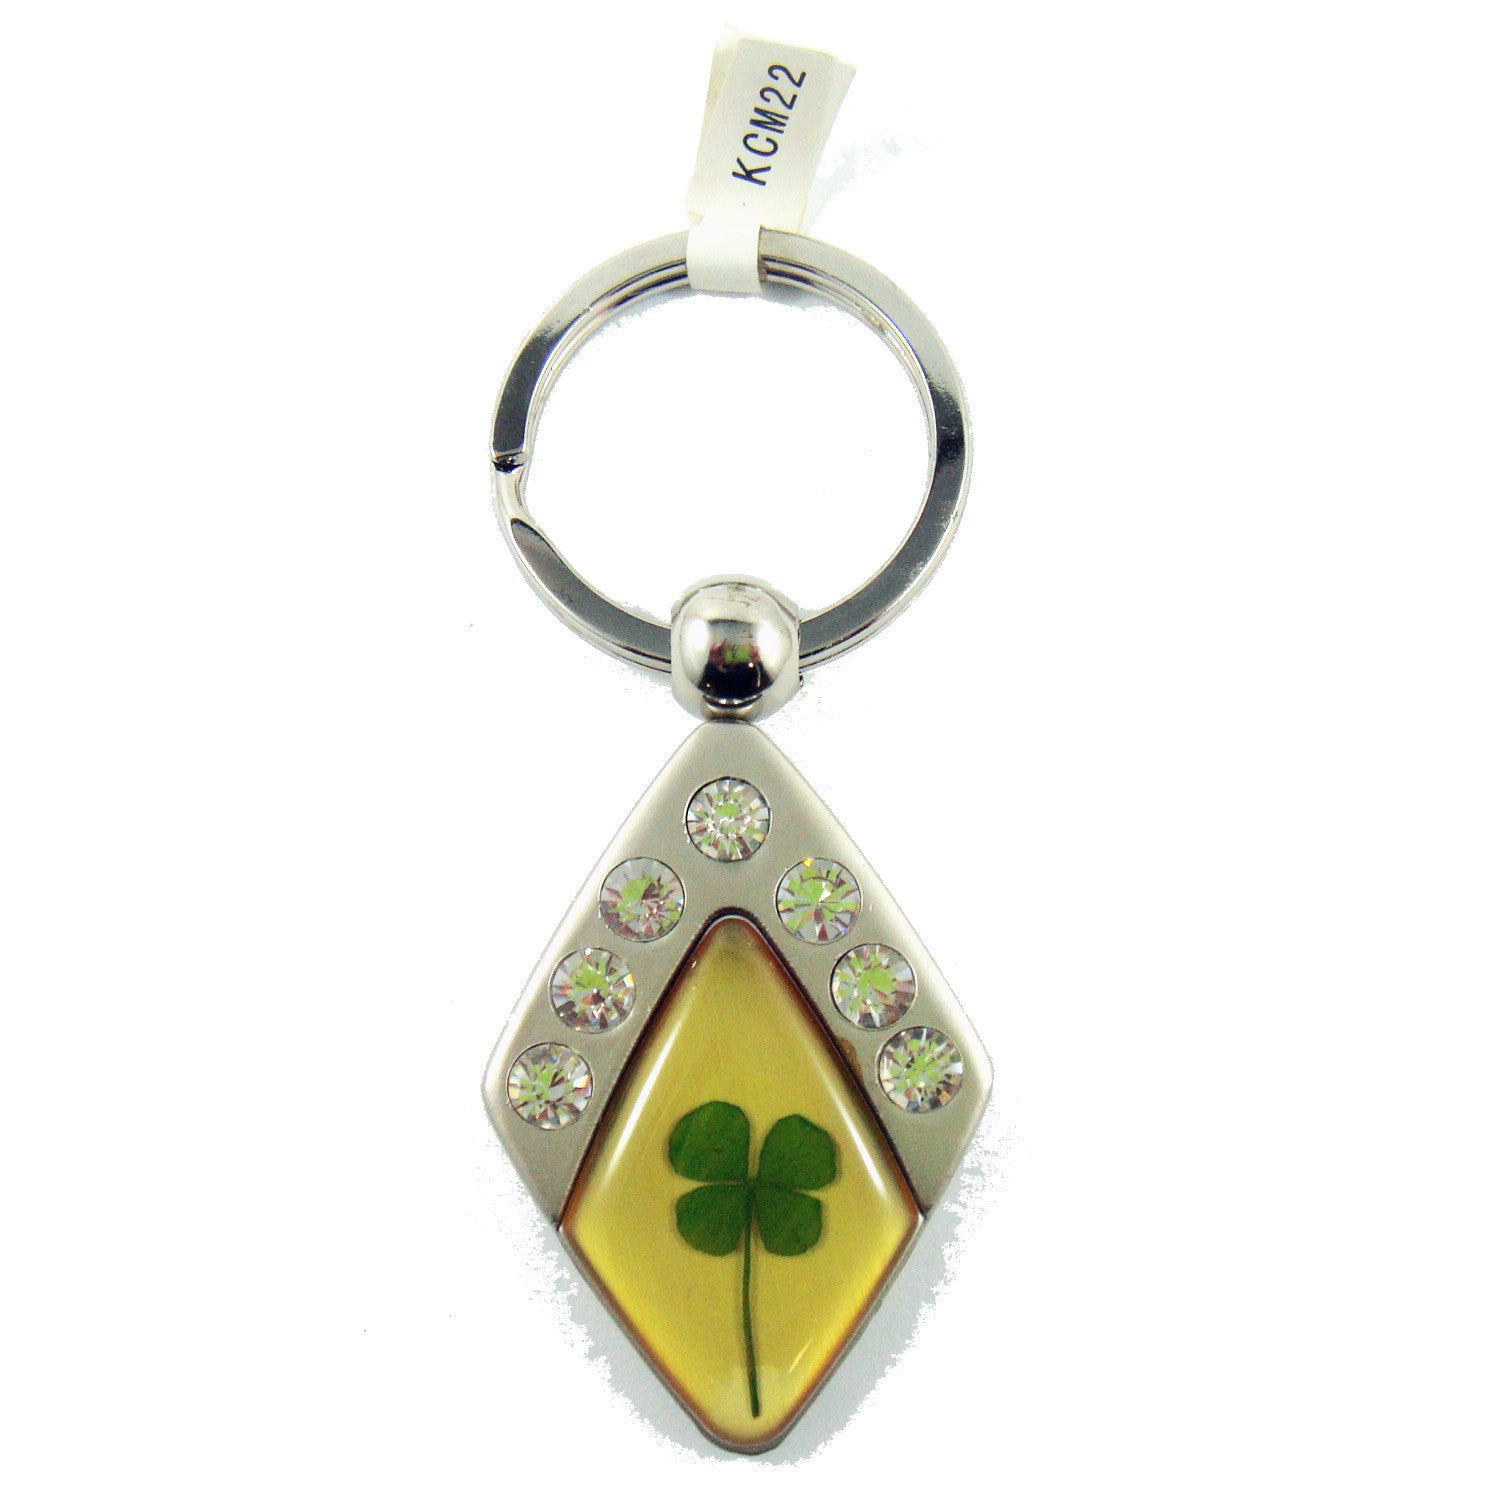 Real Lucky Clover Keychain Triangle Shaped (KCM22) – REALBUG 4a184d37beda